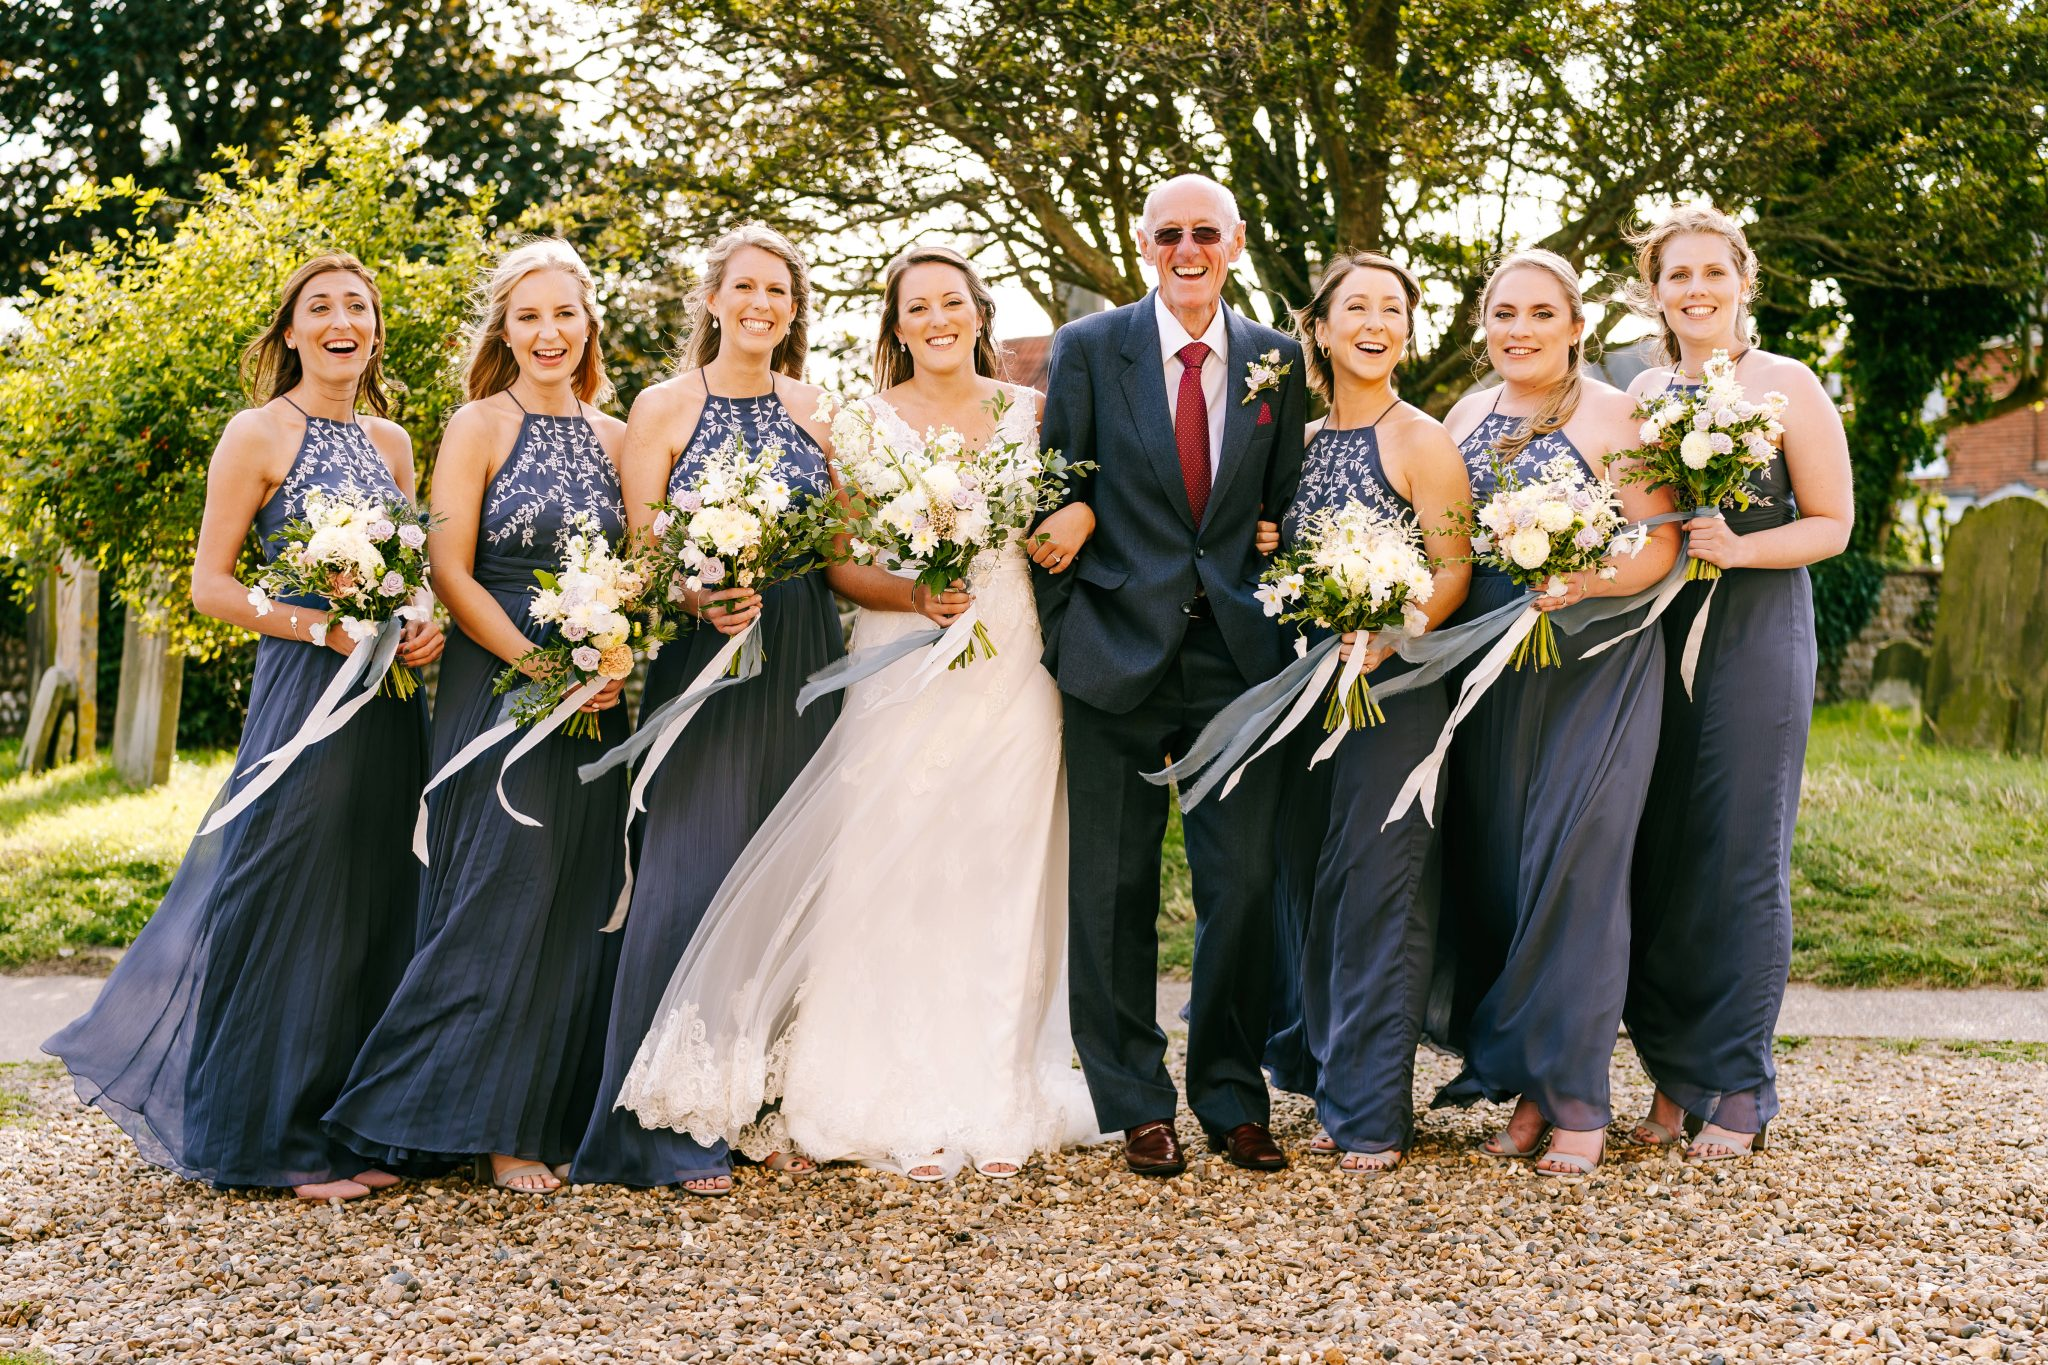 COVID-19 INTIMATE SOUTHWOLD WEDDING DAY – NORFOLK & SUFFOLK WEDDING PHOTOGRAPHER